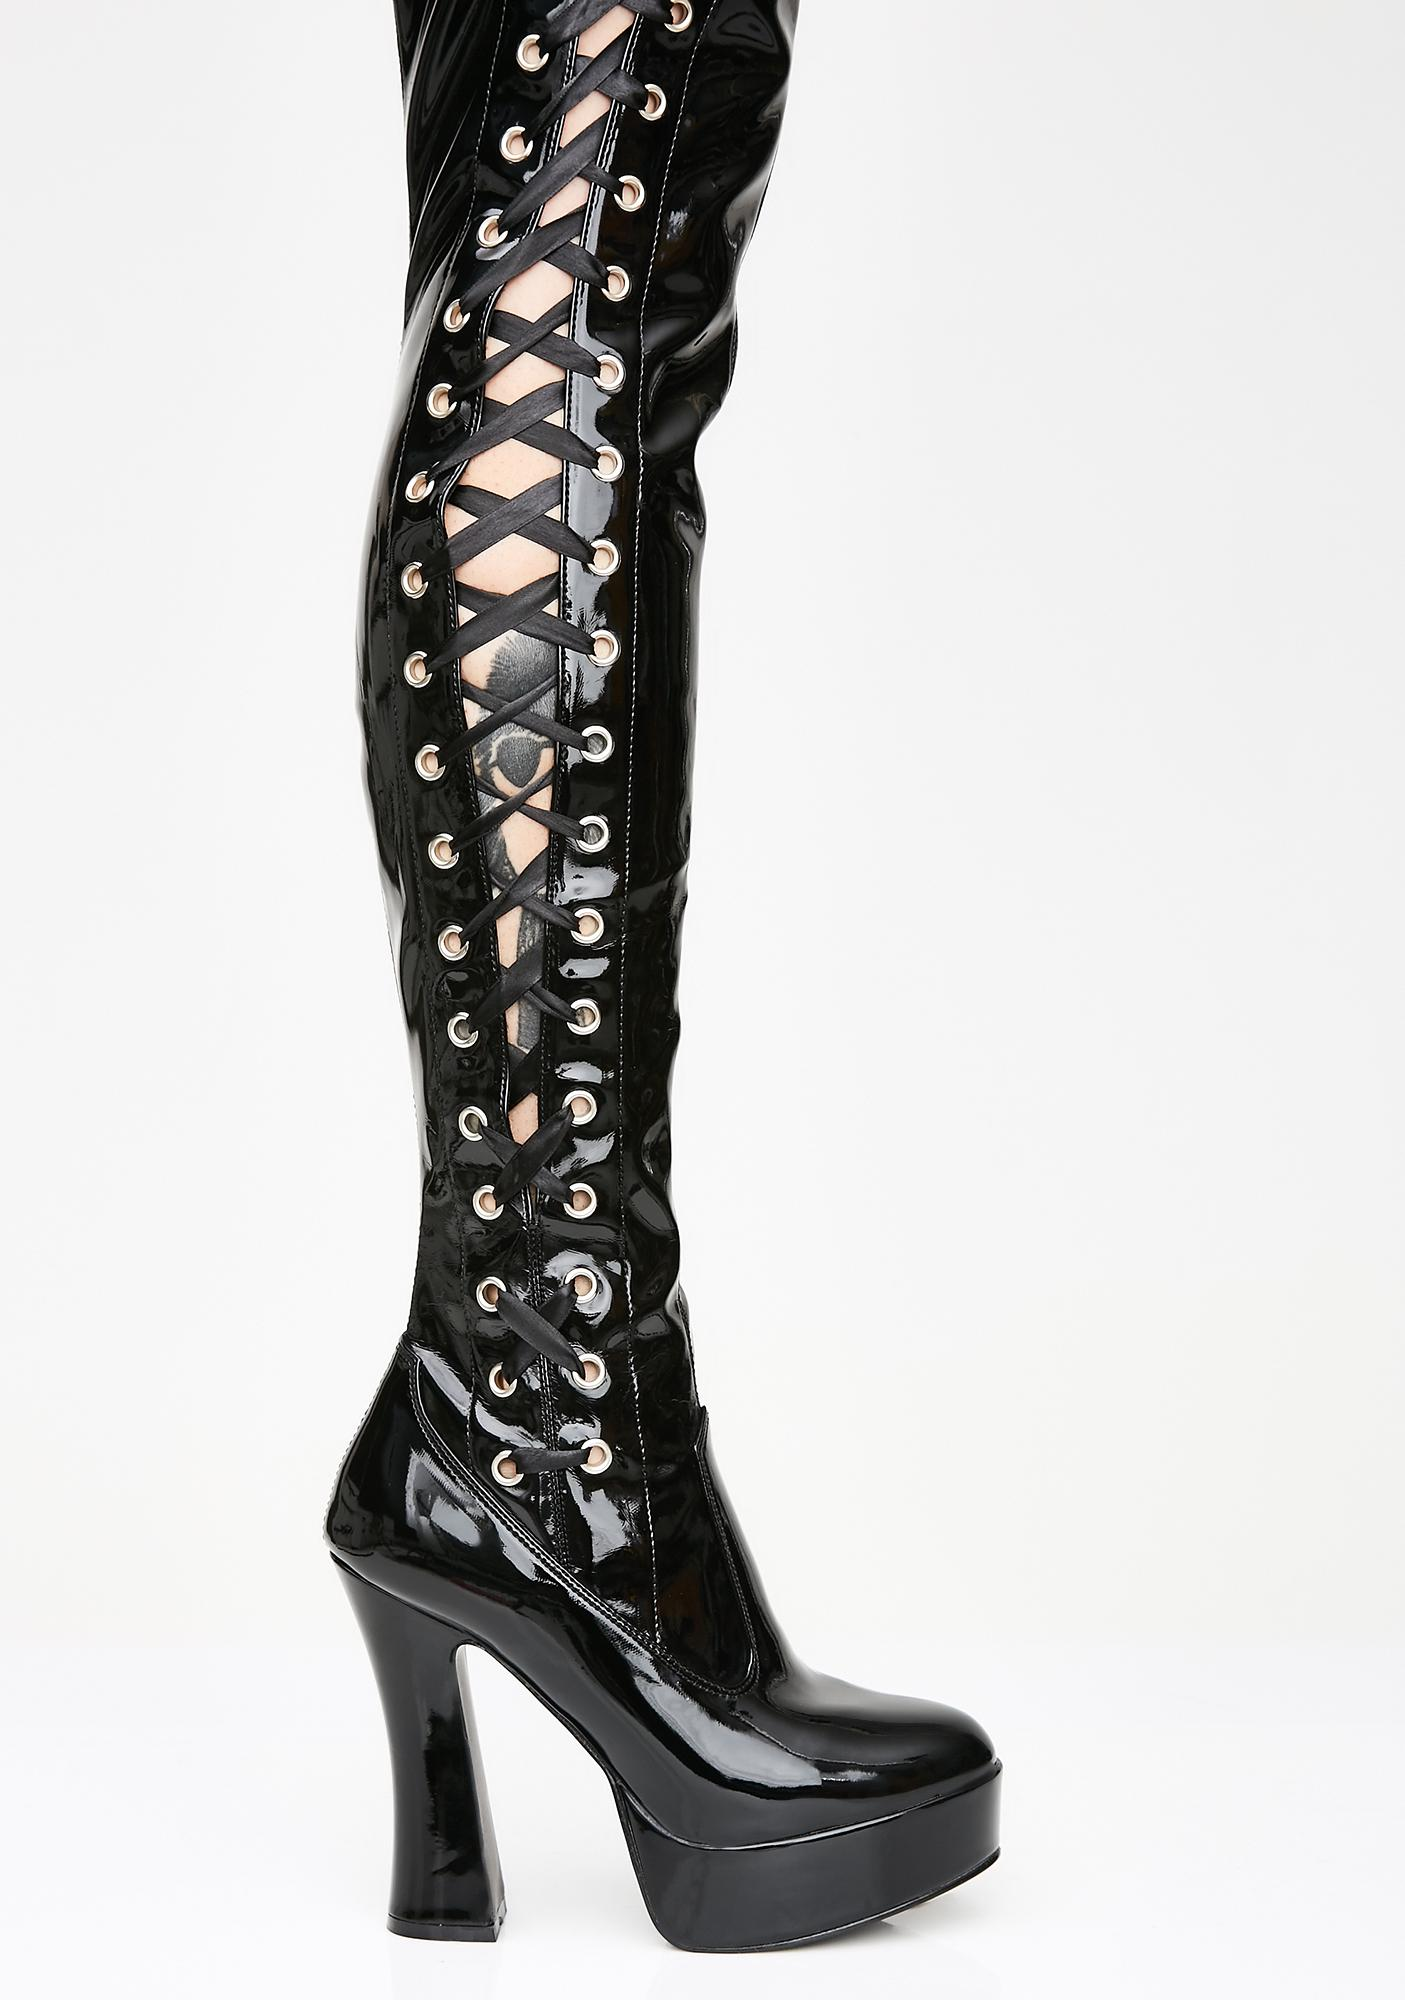 4f94528639c Pleaser Immoral Tendencies Thigh High Boots